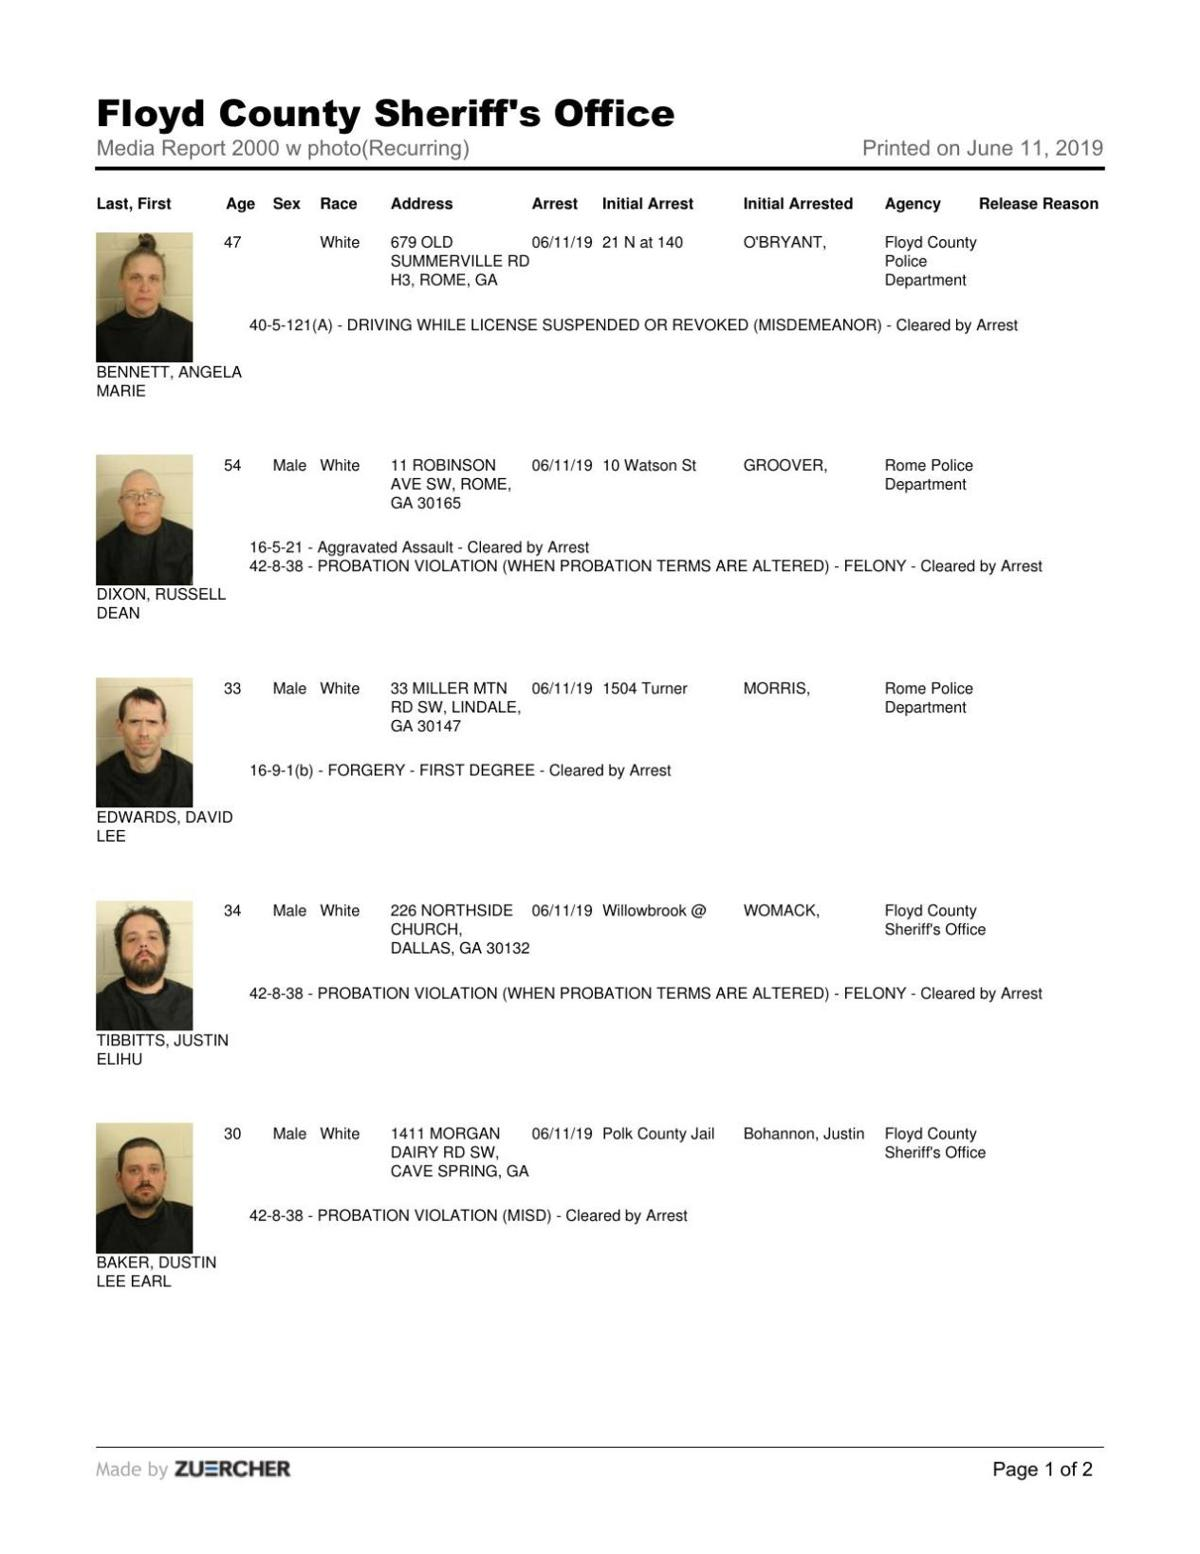 Floyd County Jail reports for Tuesday, June 11